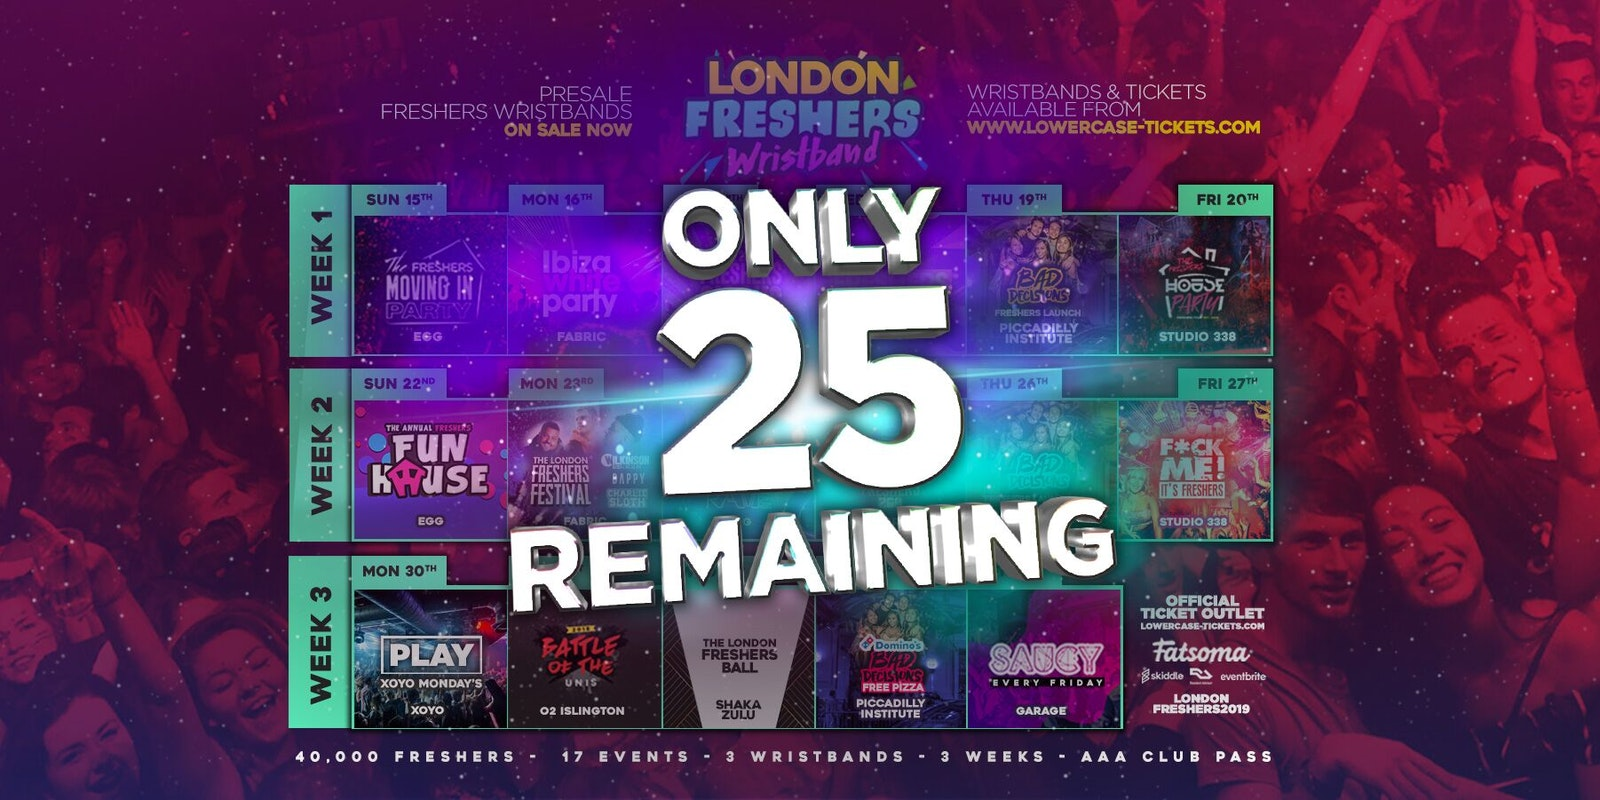 THE OFFICIAL LONDON FRESHERS WRISTBAND 2019 ✅